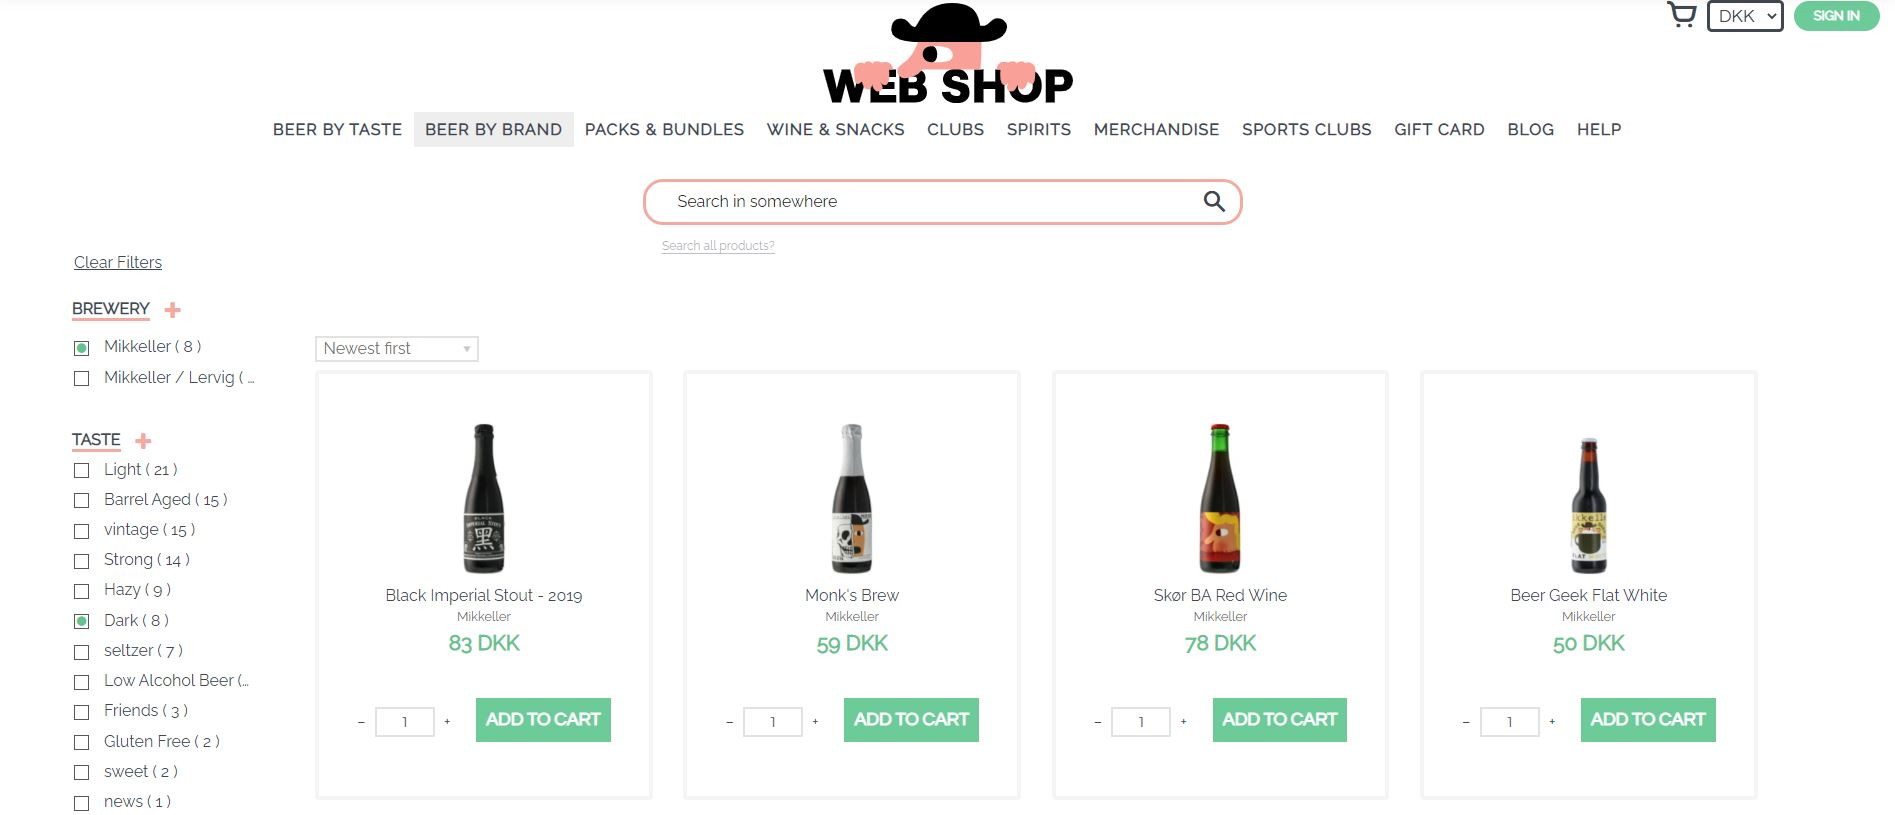 Mikkeller webshop screenshot with beers and filters